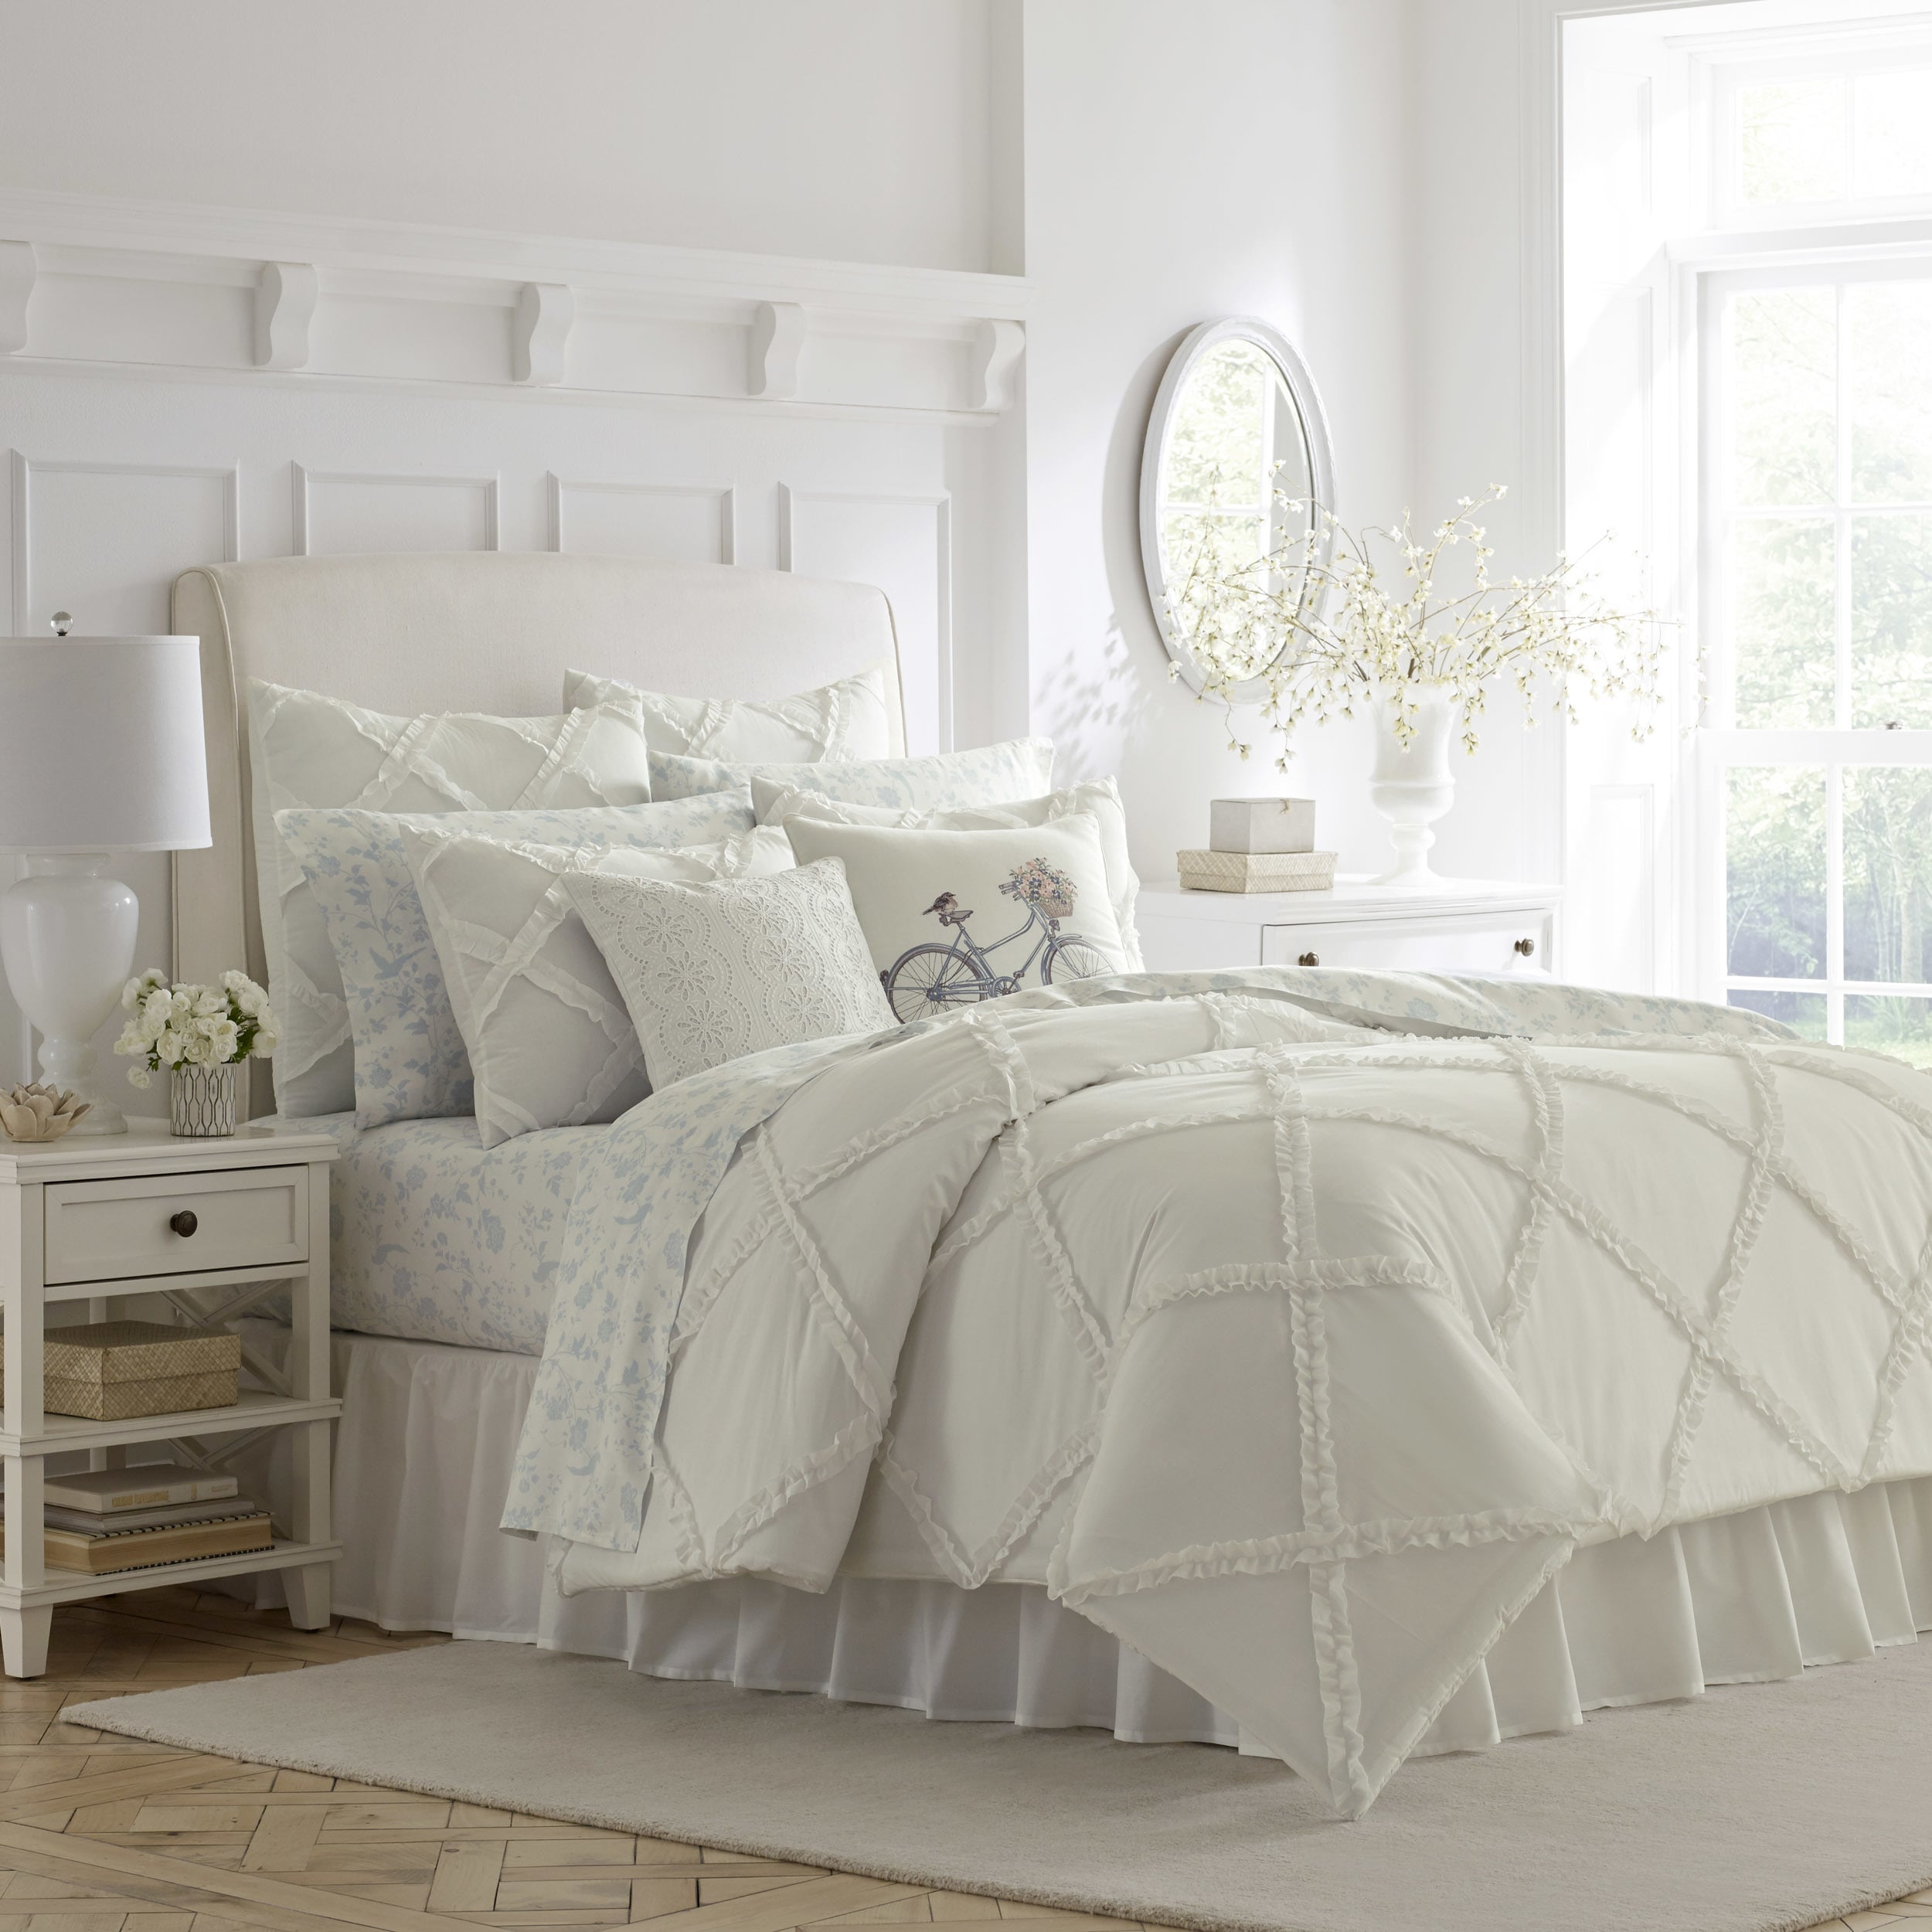 for set ideas sets bedroom fabulous white design comforter pearl ruffle with interior romantic anastacia home